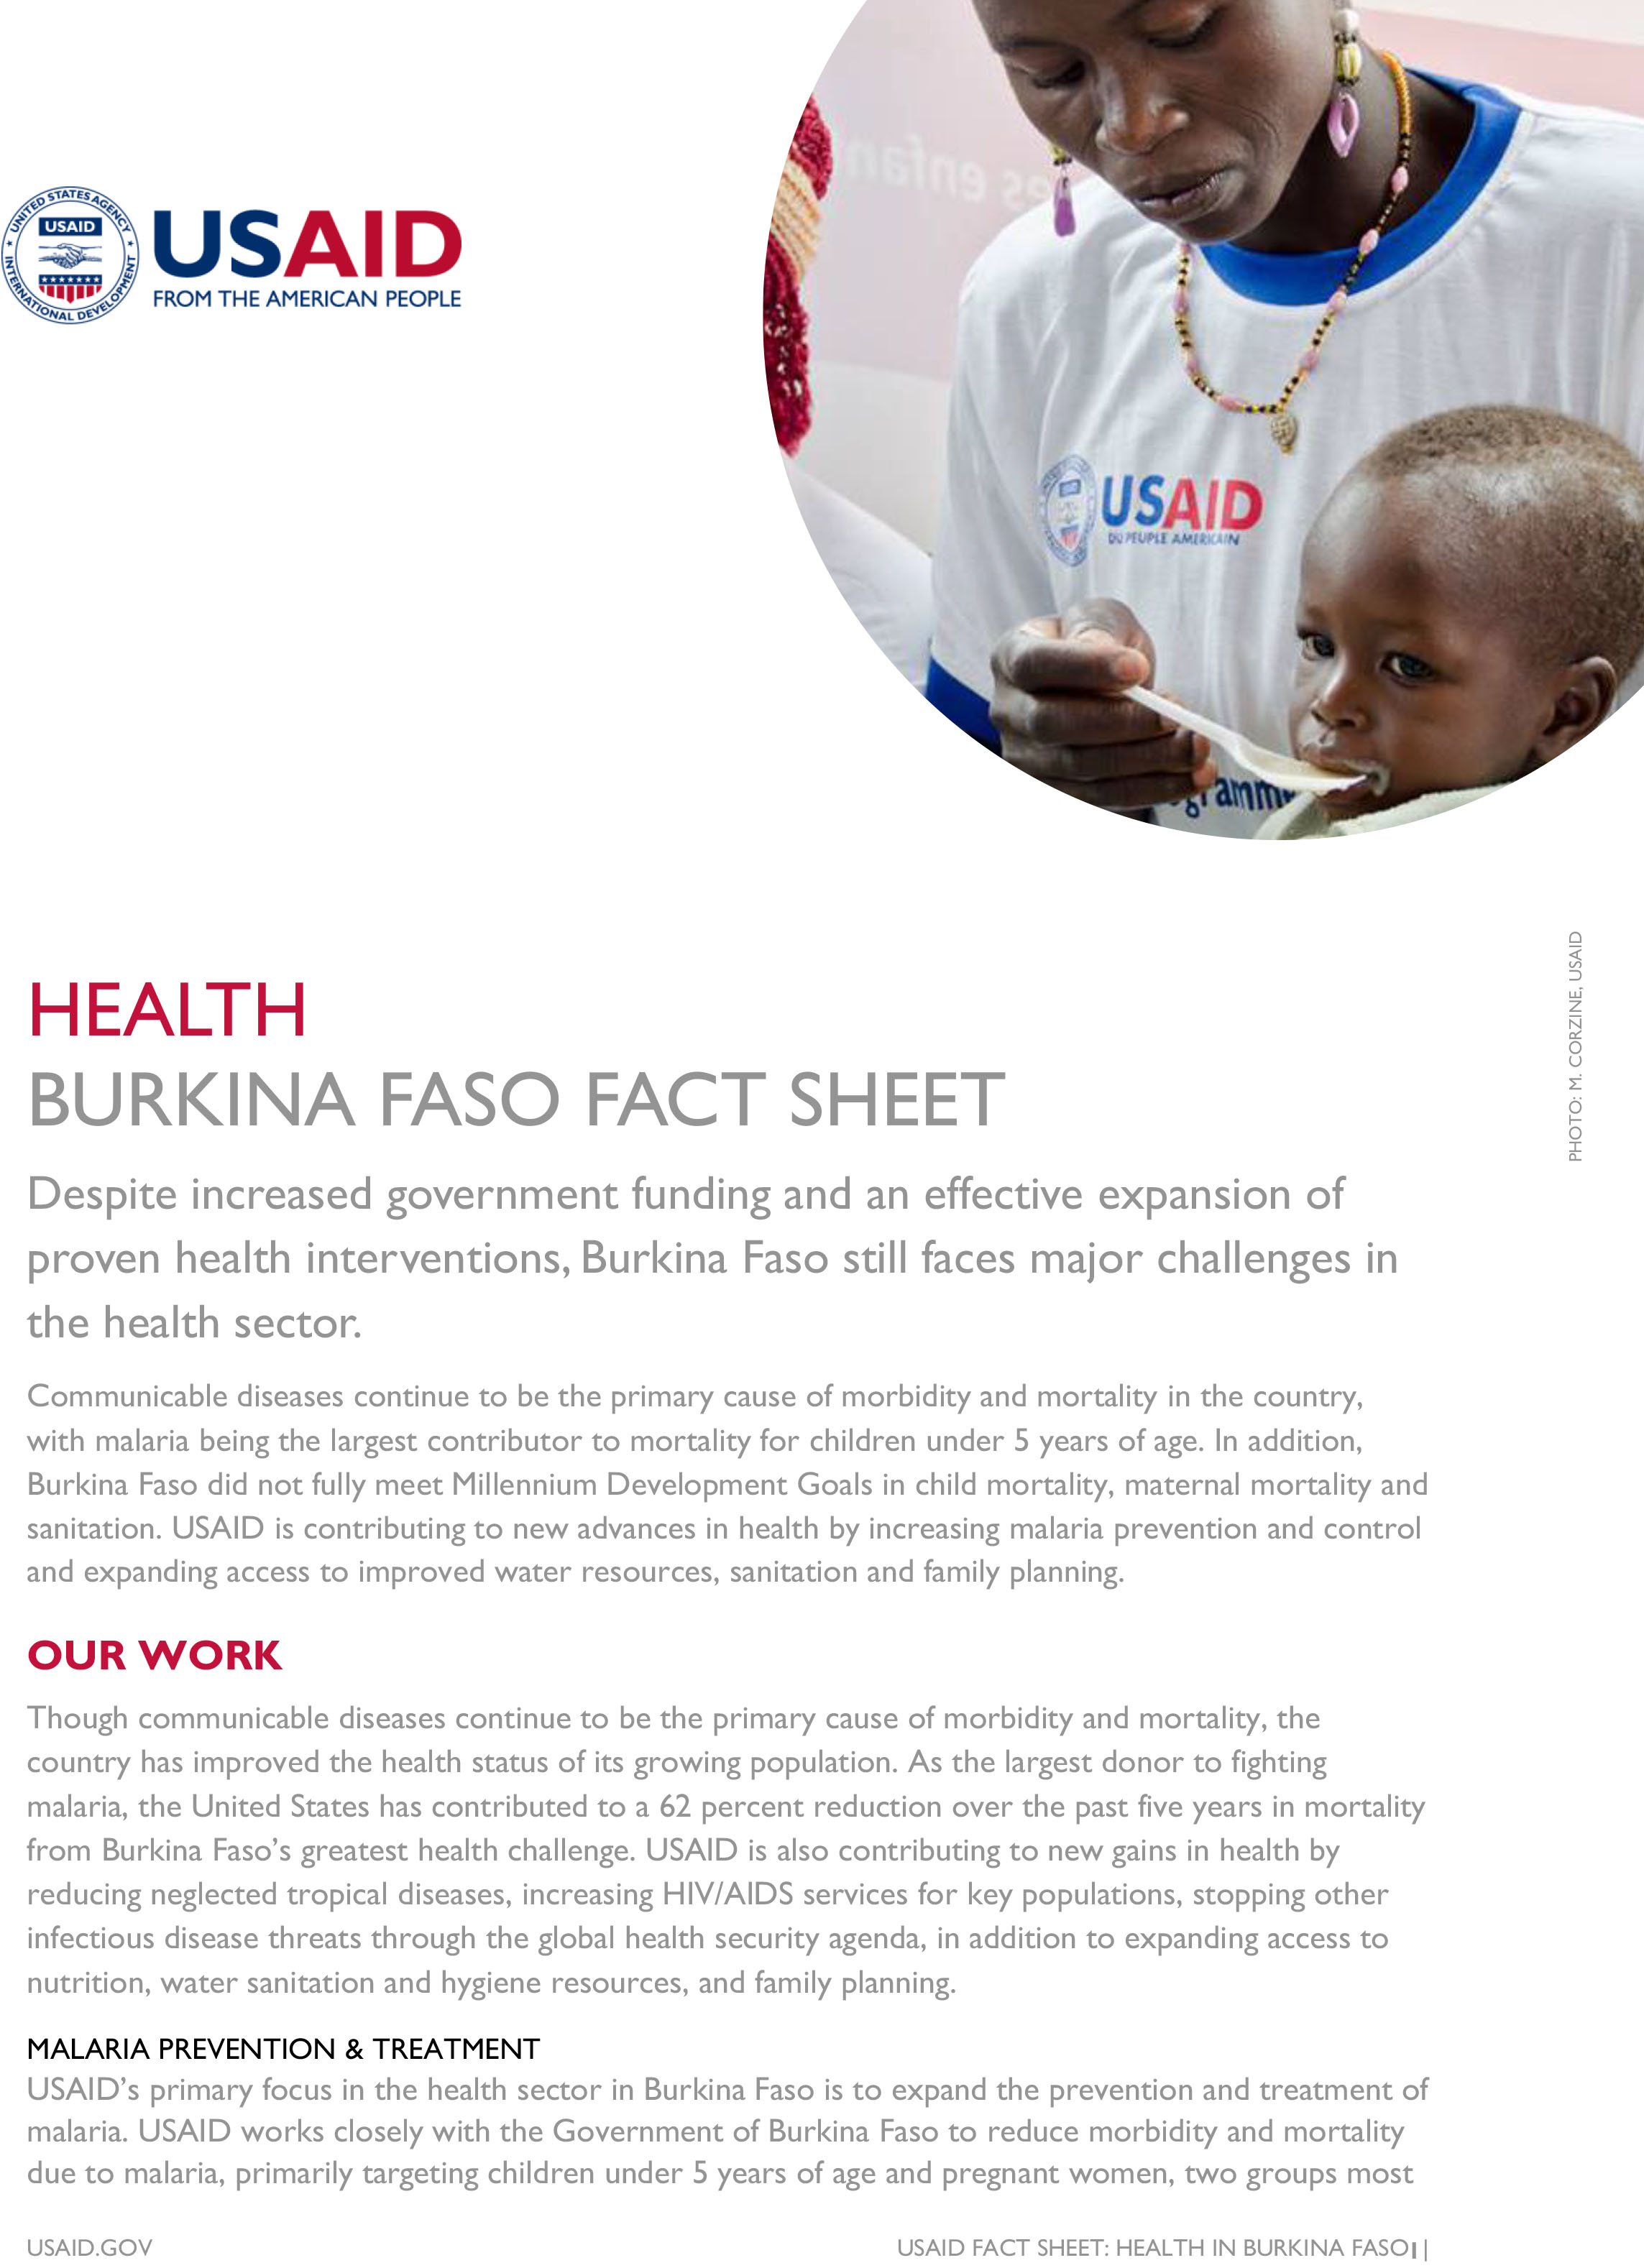 Burkina Faso Fact Sheet-Health